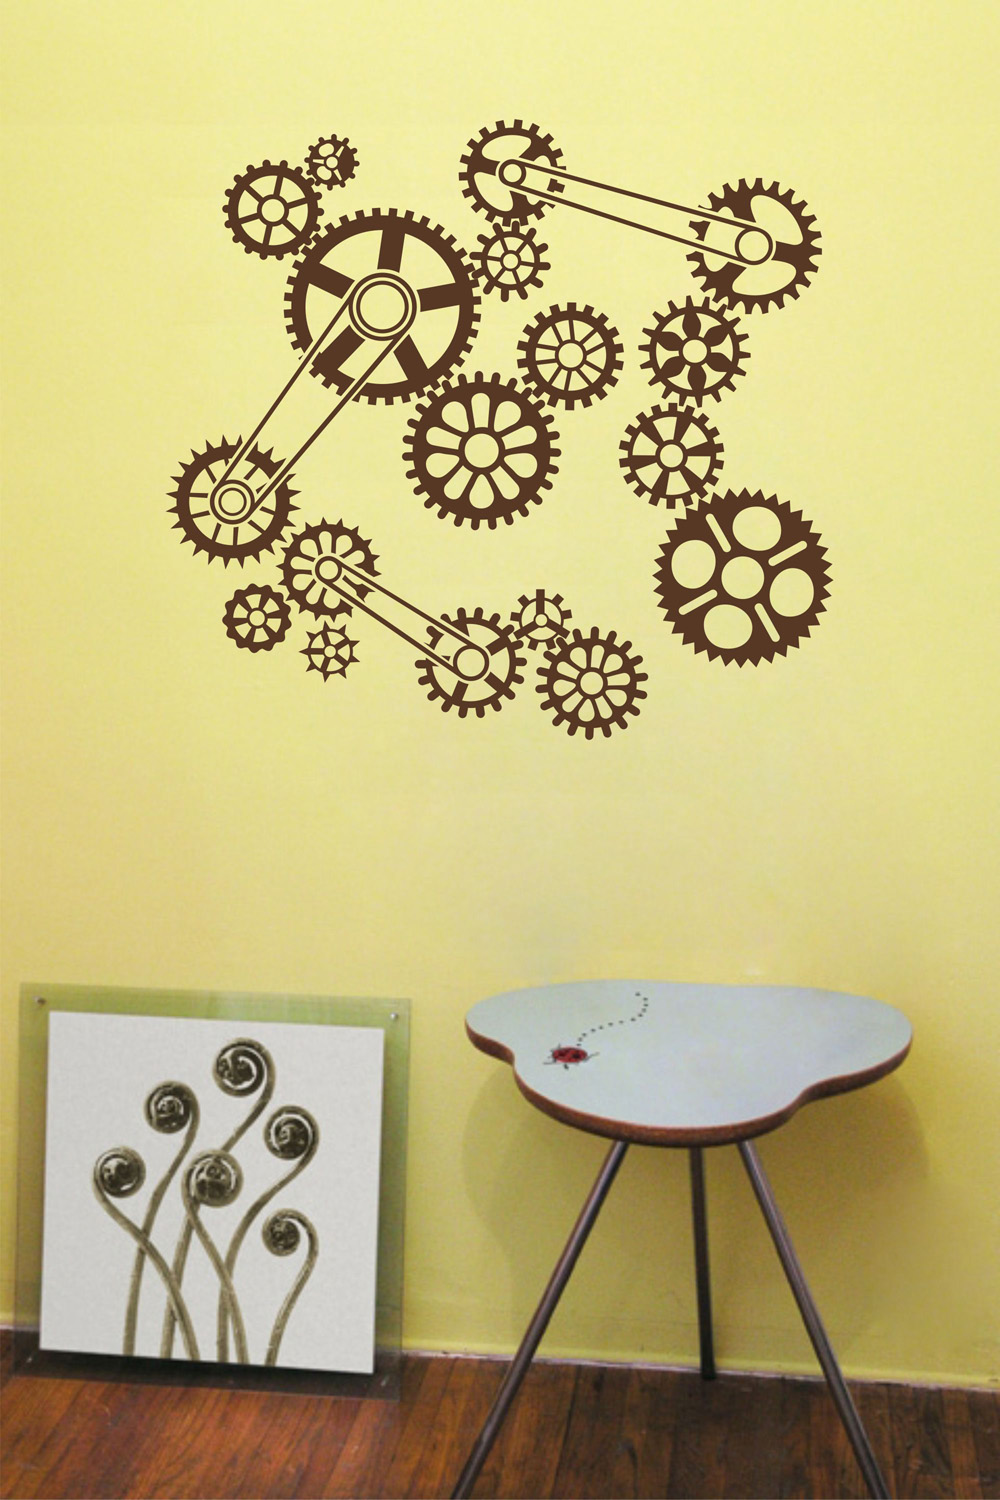 Vinyl Wall Art Decal Gears Mechanism Teamwork Office Work Decoration ...